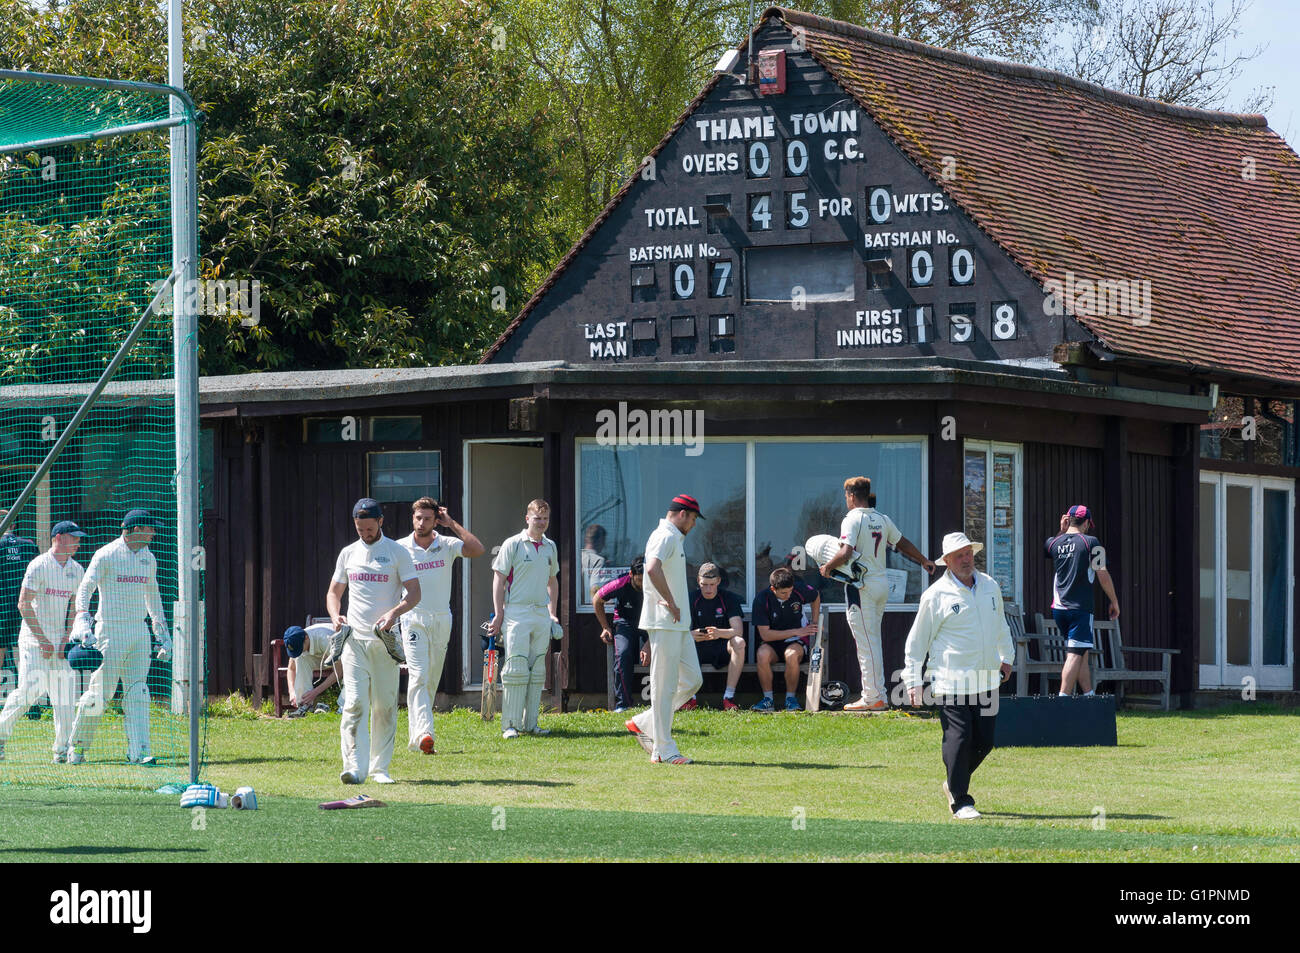 Thame Town Cricket Club match, Church Meadow, Thame, Oxfordshire, England, United Kingdom - Stock Image